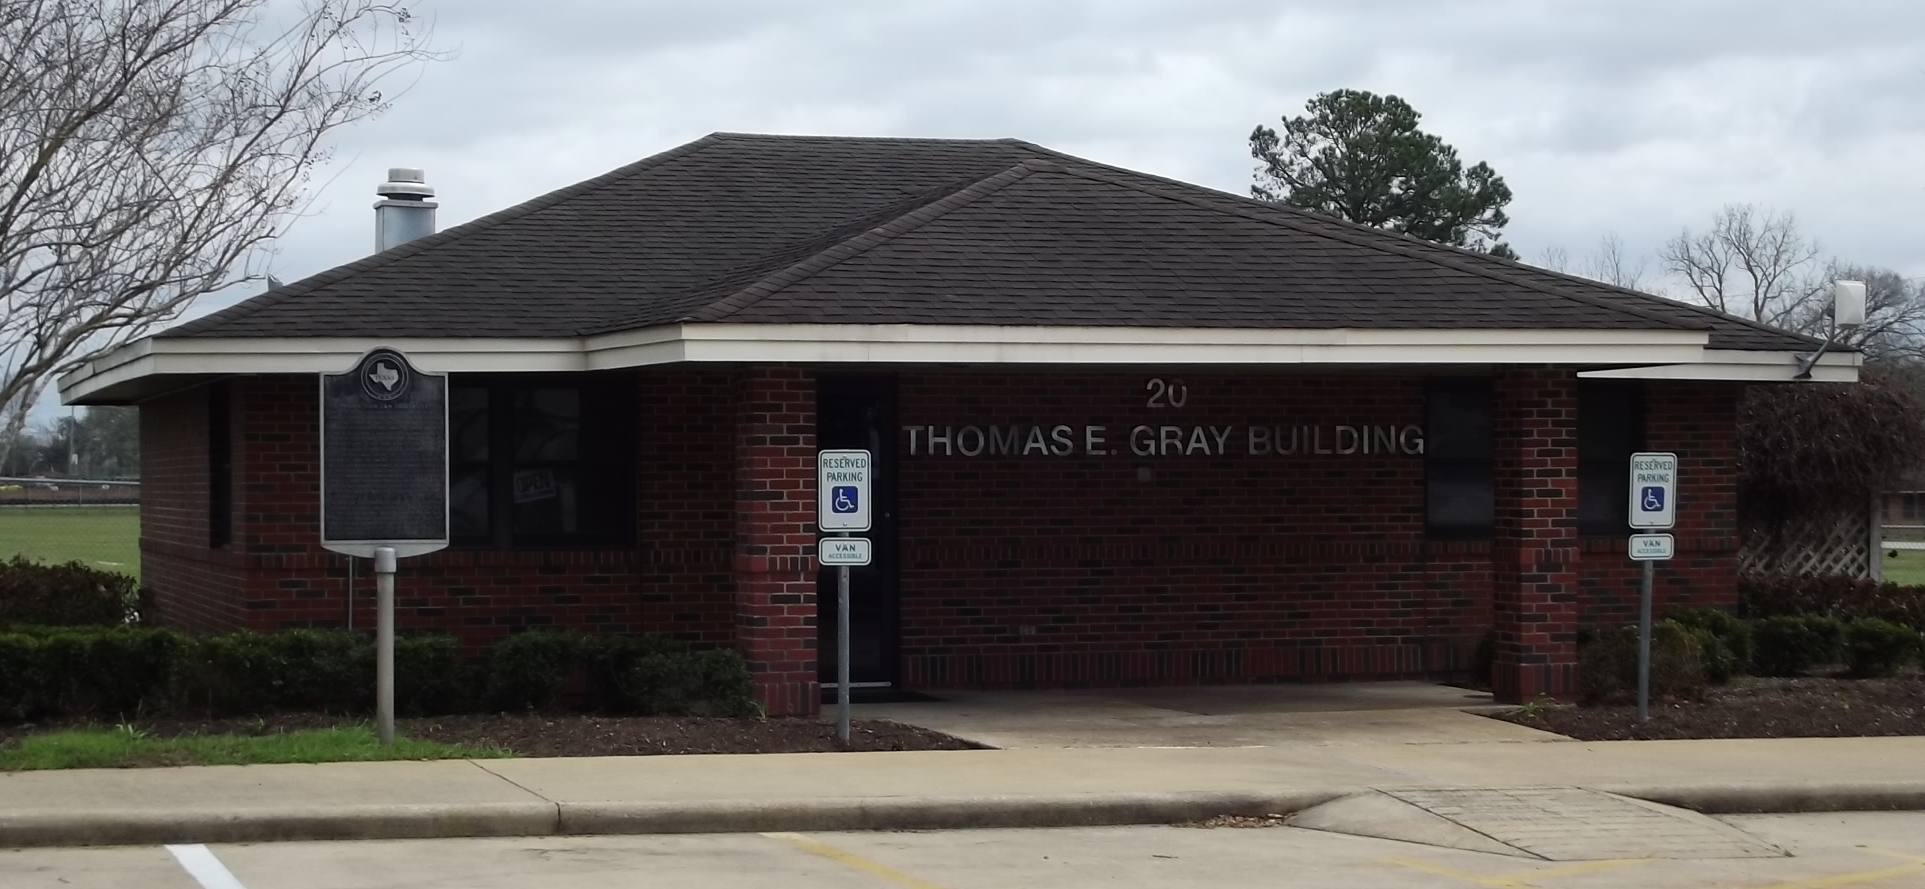 Thomas E Gray Building